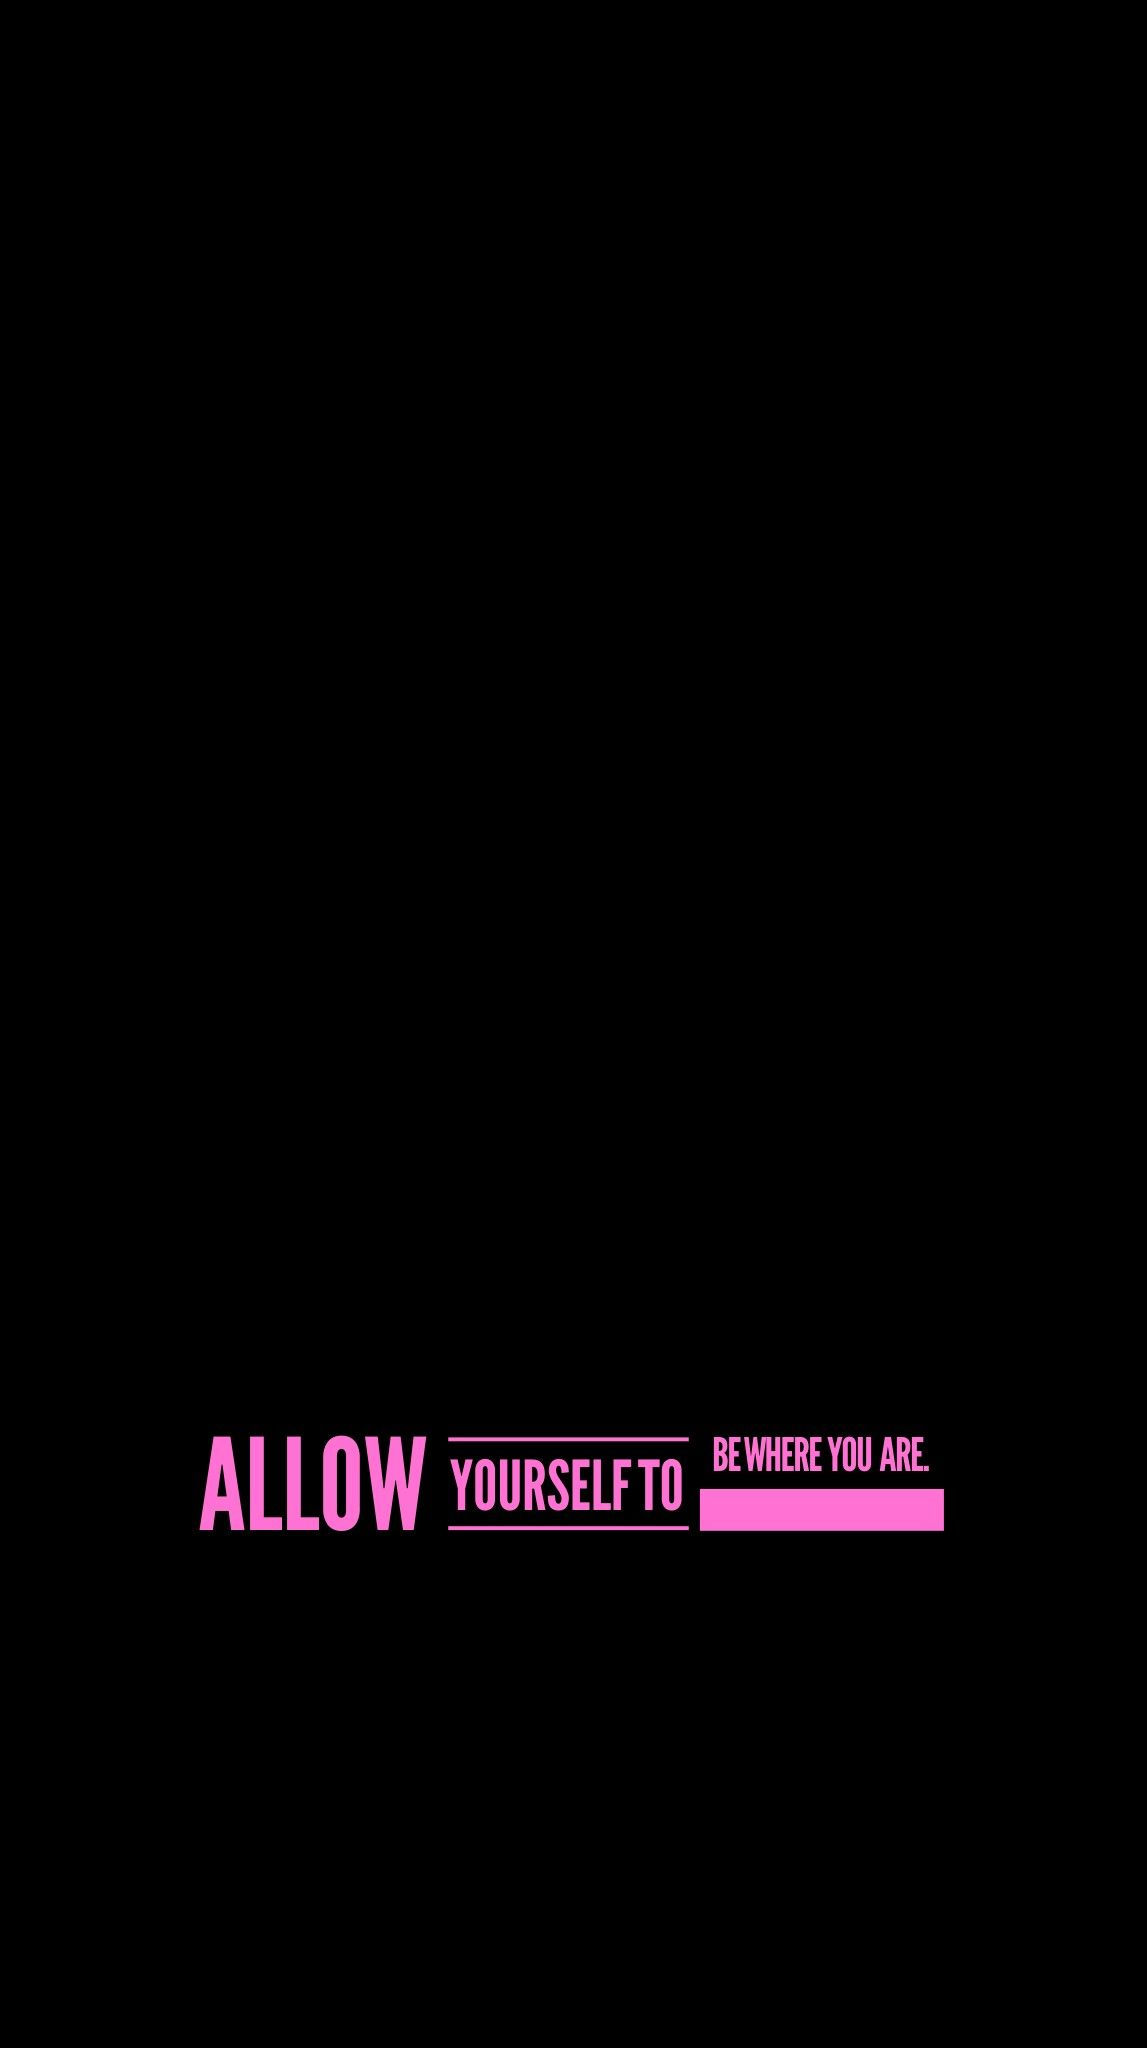 wallpaper iPhone Android background quote simple black pink 1147x2048